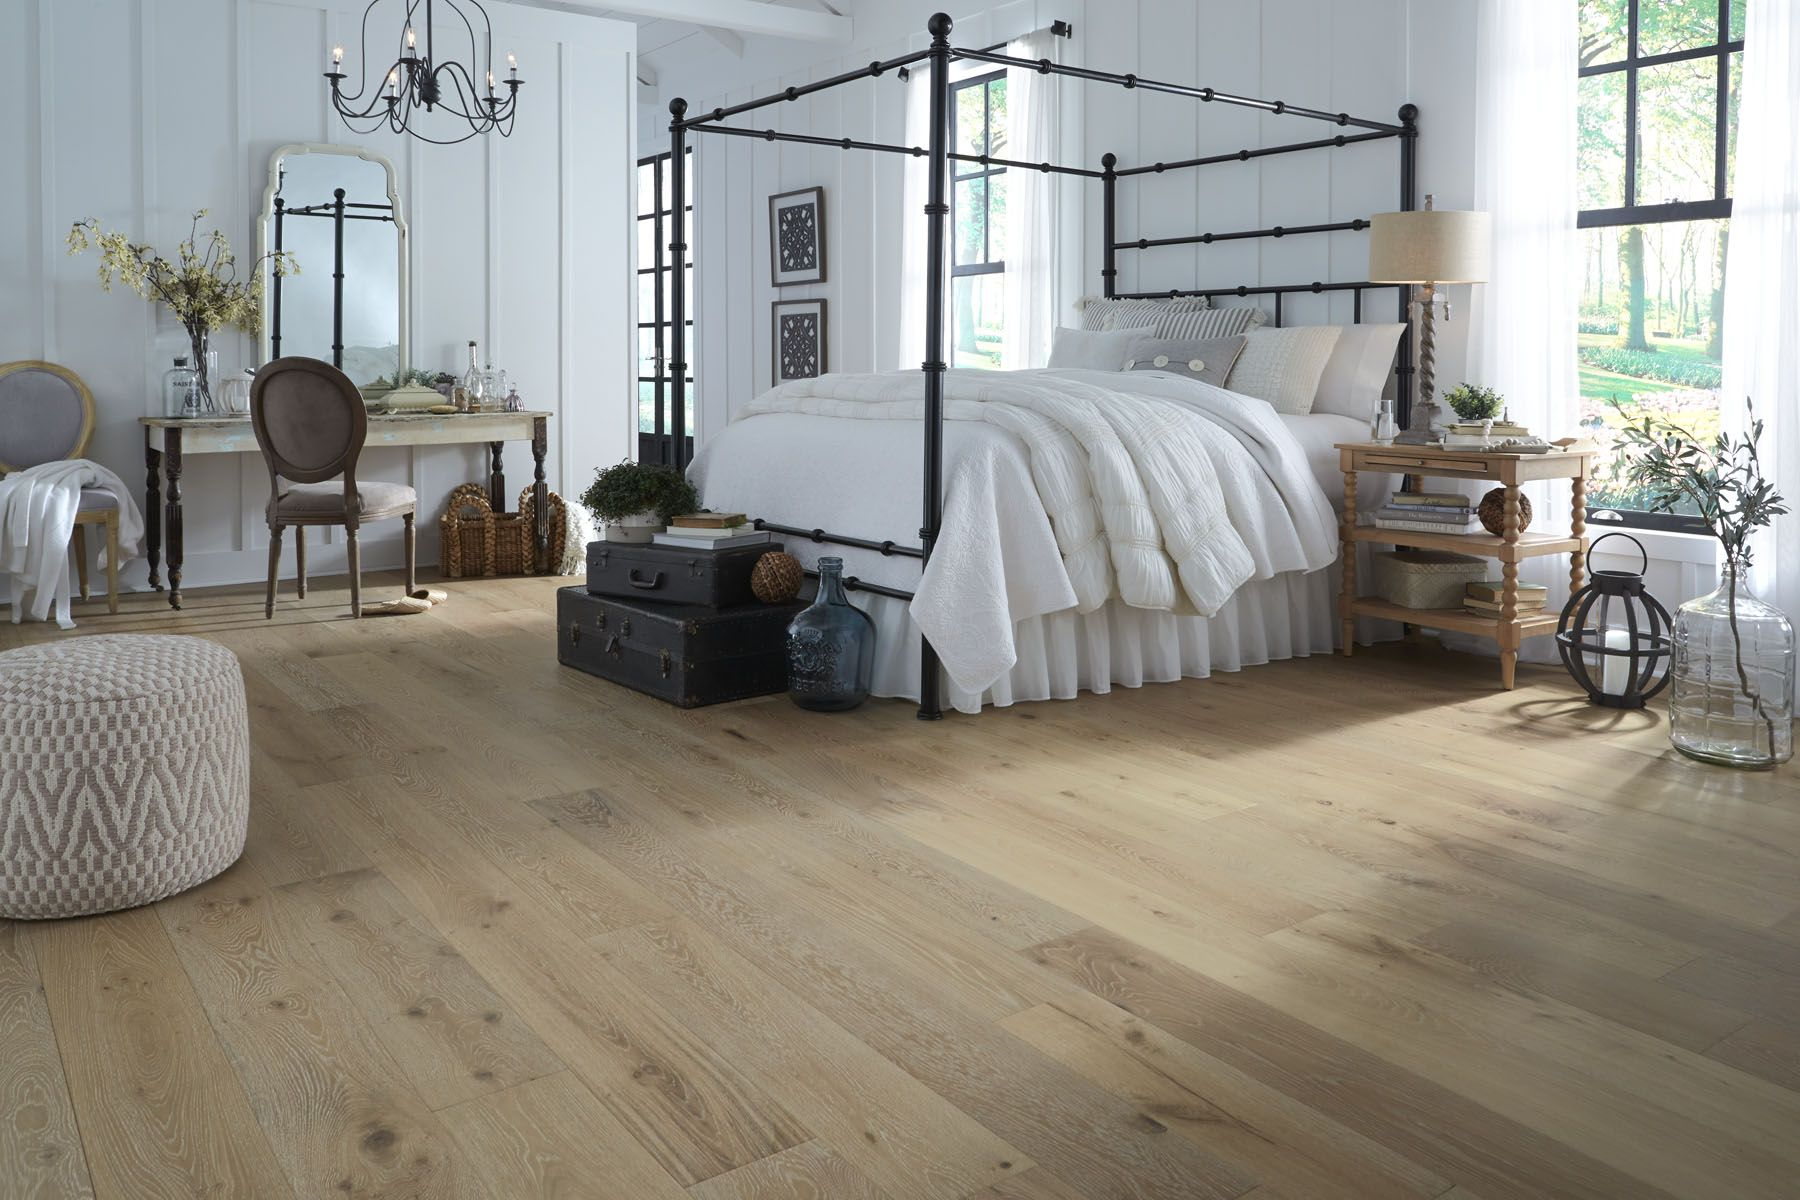 Virginia Mill Works Engineered 9 16 X 7 1 2 Whispering Wheat Oak Wirebrushing Is A Distressing Te Oak Lumber Oak Engineered Hardwood Wood Floors Wide Plank